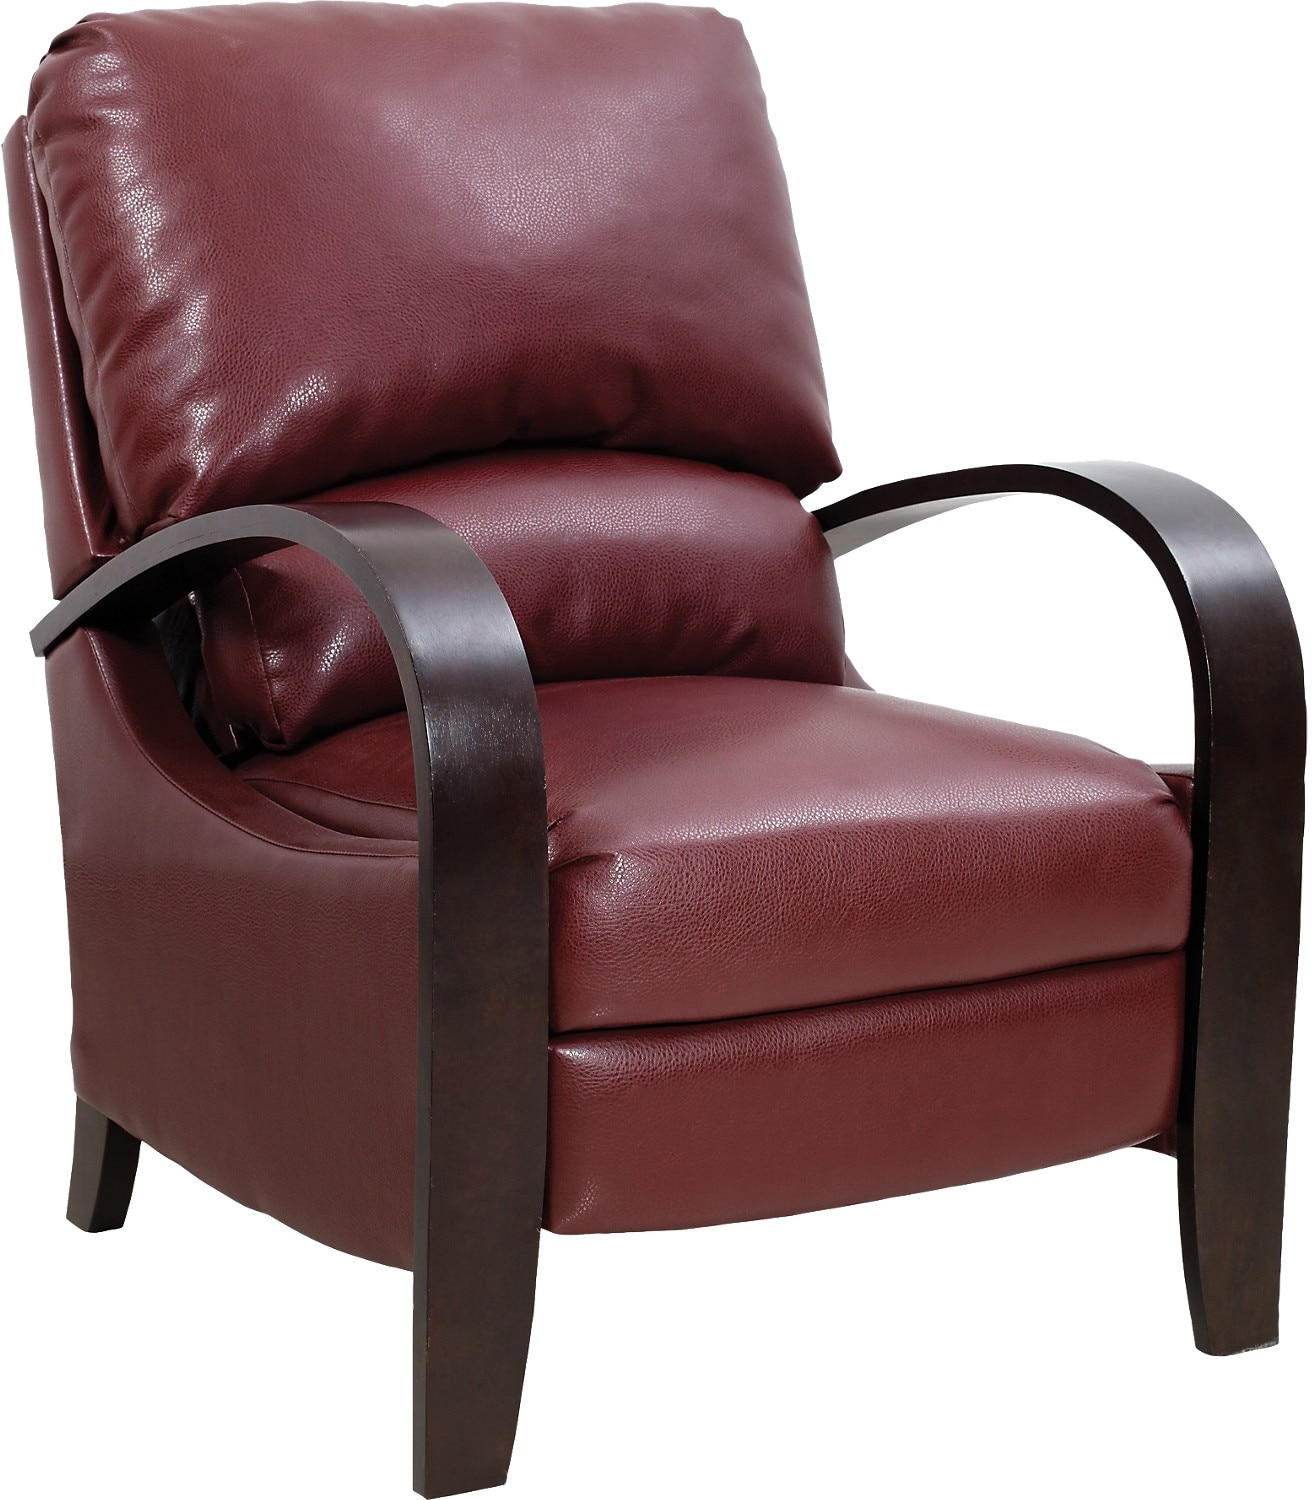 reclining accent chair mayfair dining chairs set of 2 aaron fabric  lava the brick